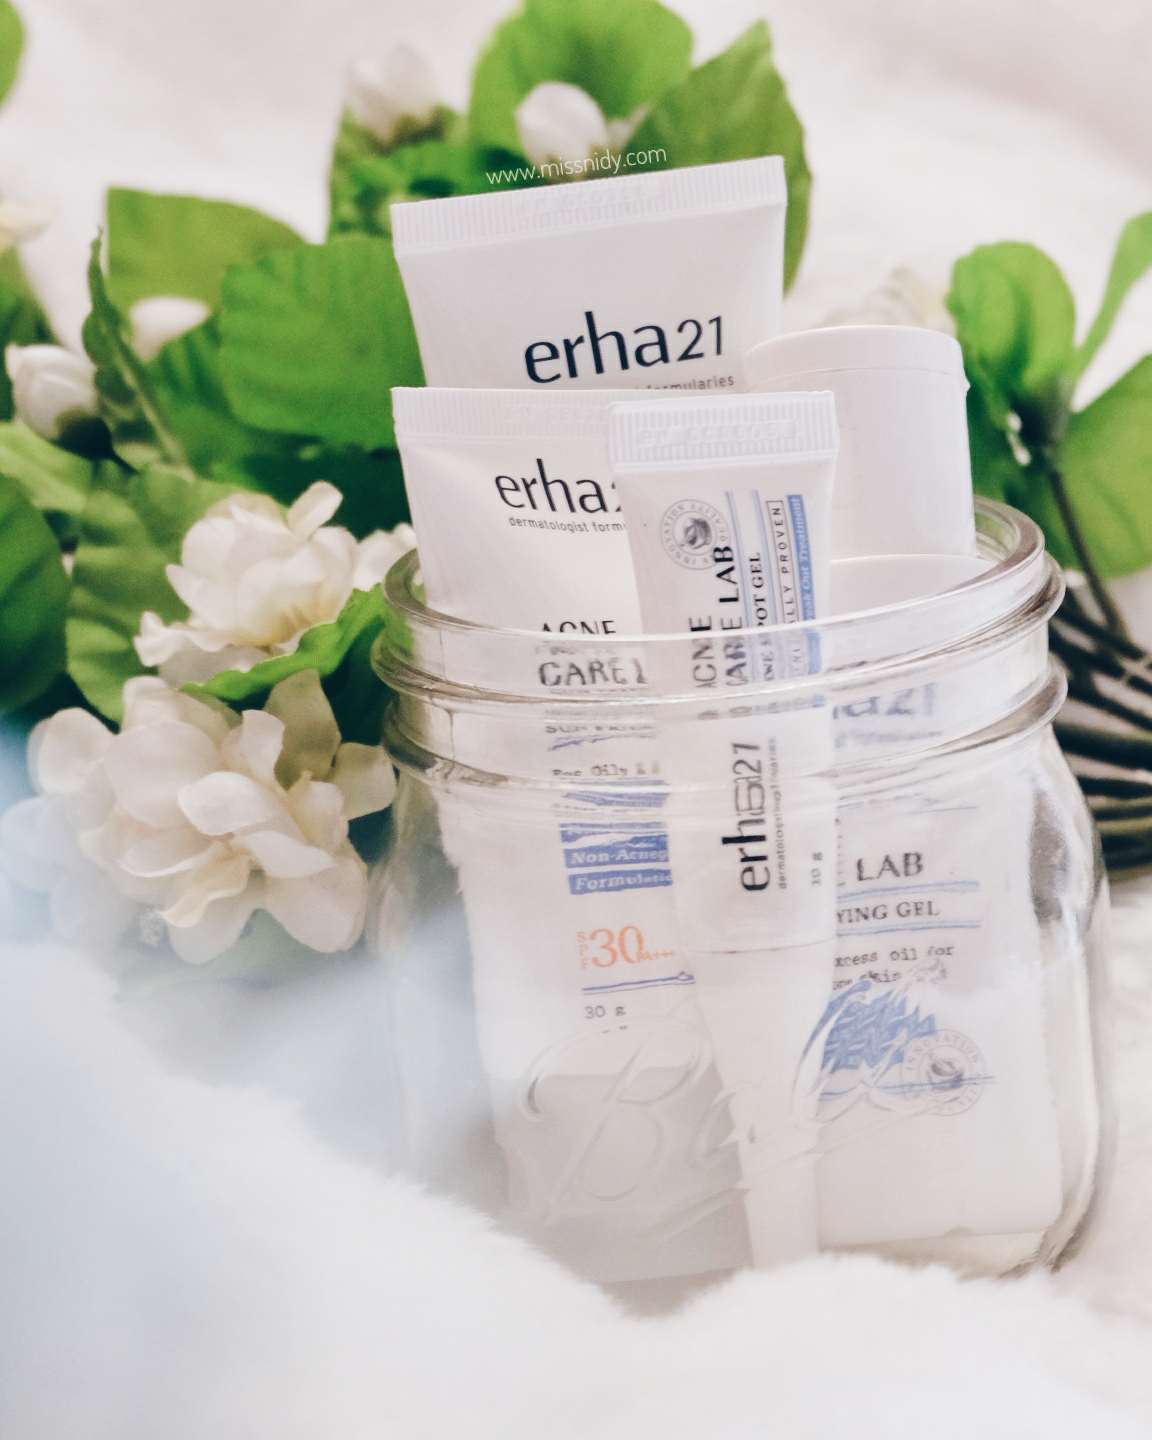 erha acne care lab review